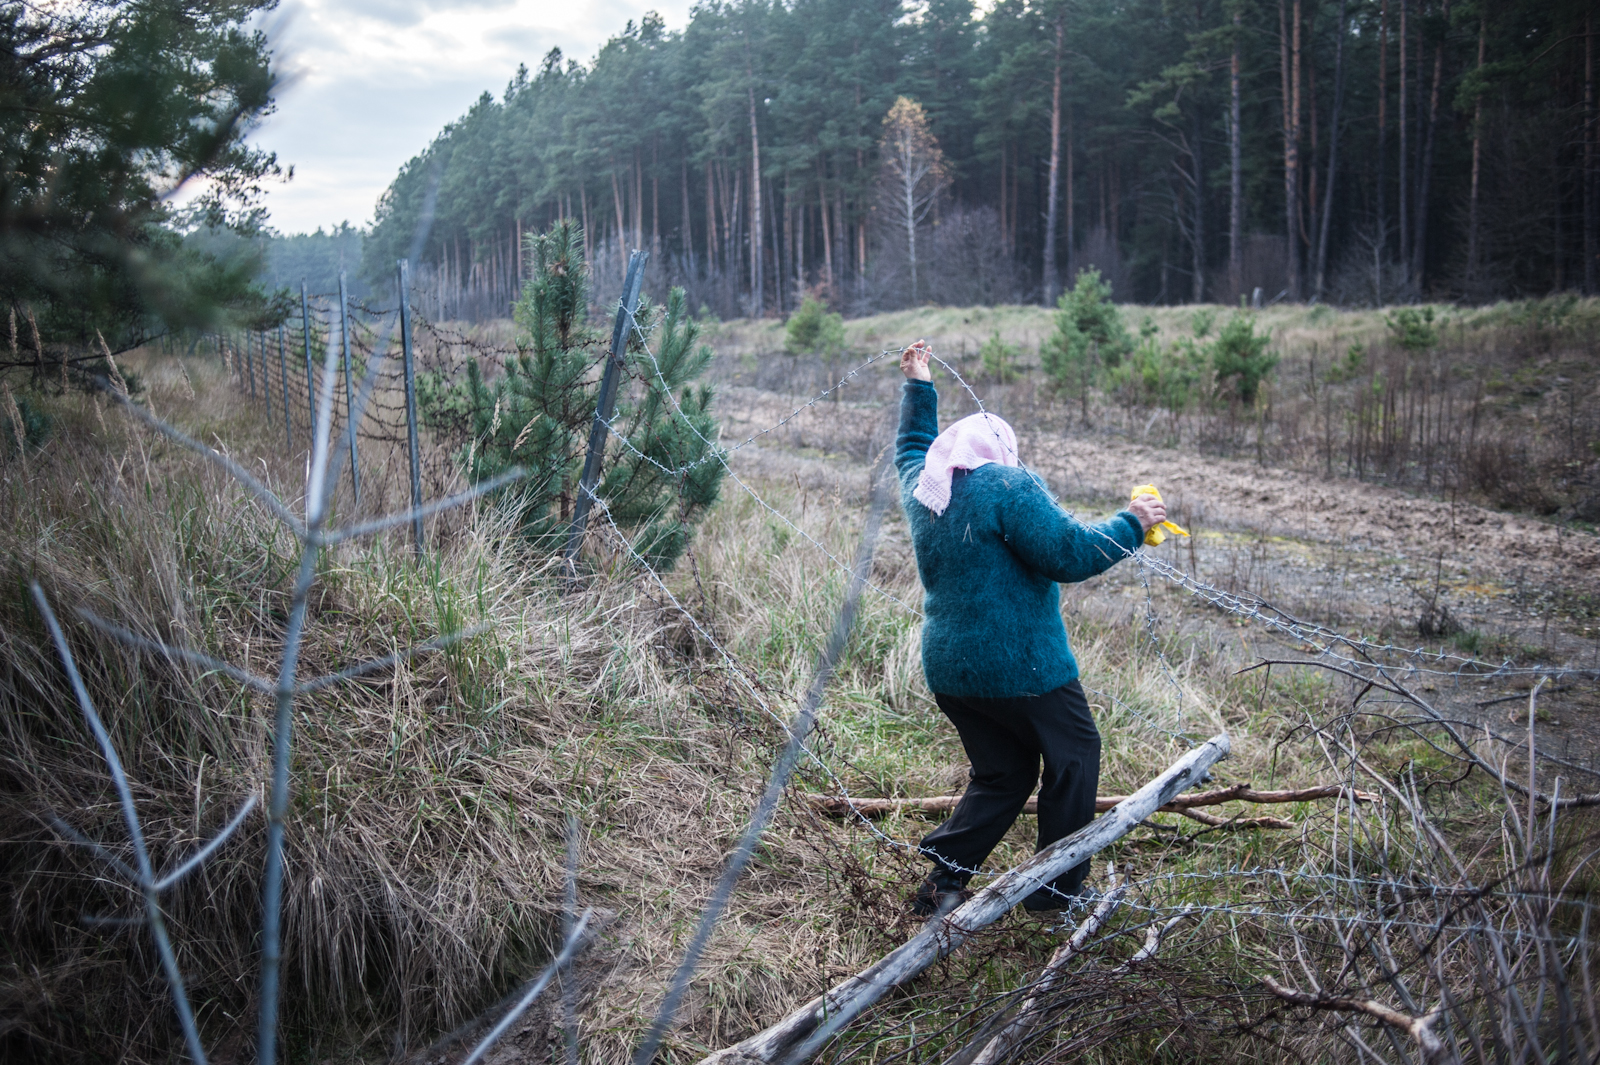 A woman illegally crosses into the forbidden forests of the Exclusion Zone